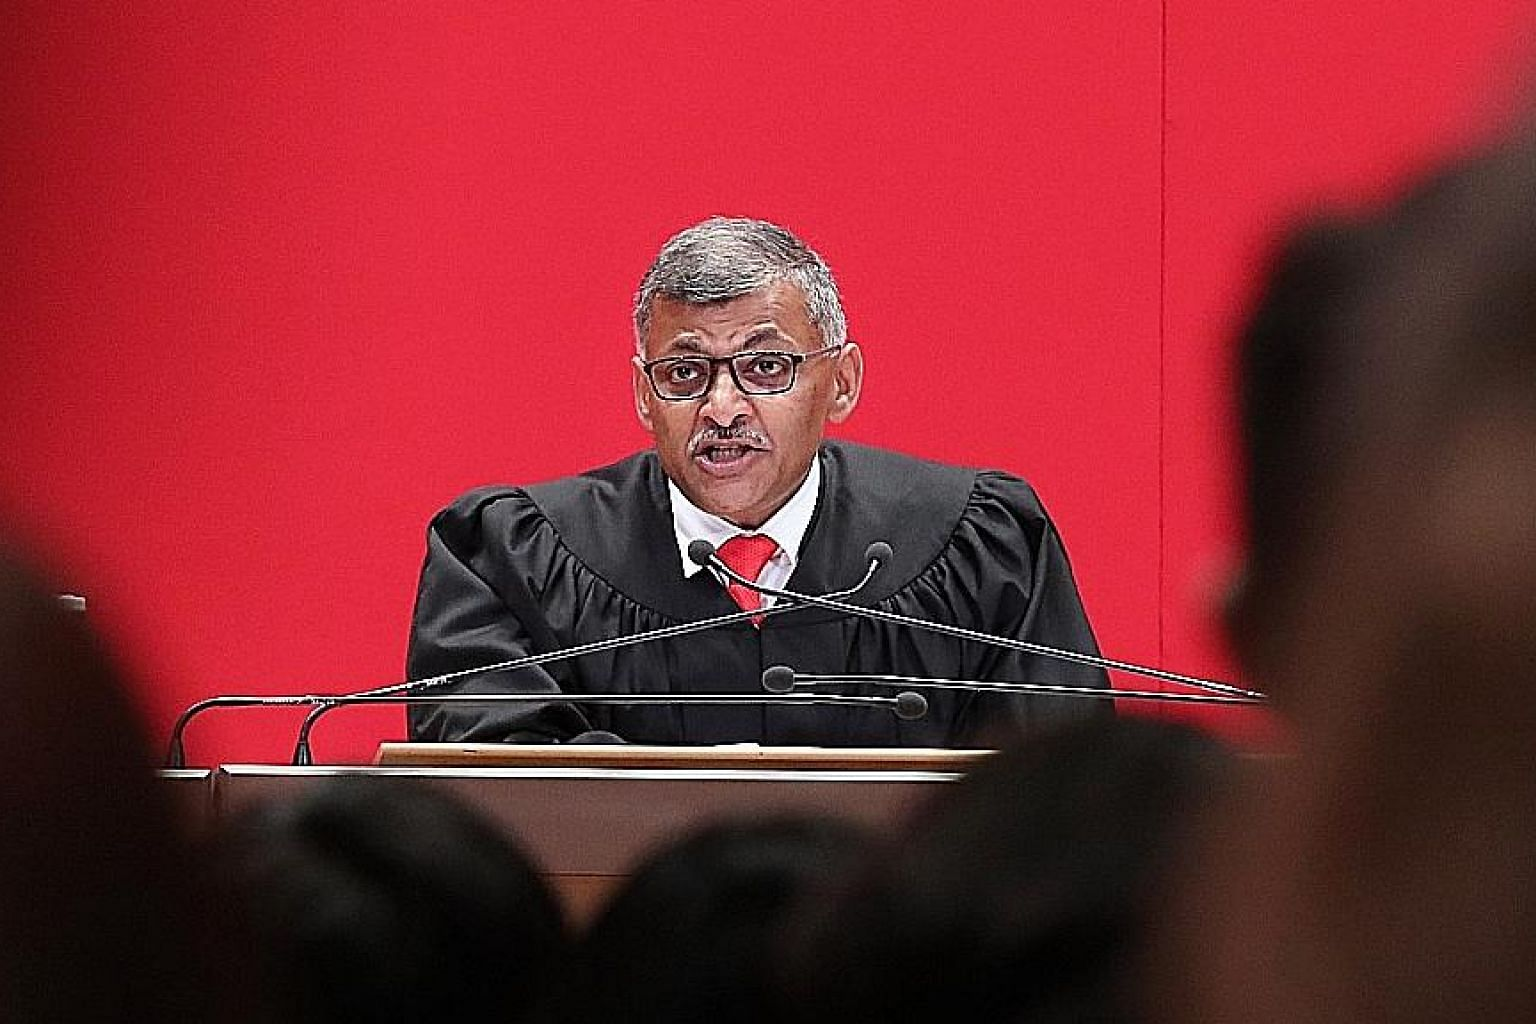 Chief Justice Sundaresh Menon, in a lecture at the Indiana University Robert H. McKinney School of Law last week, urged law schools to fundamentally reimagine the current model of legal education.